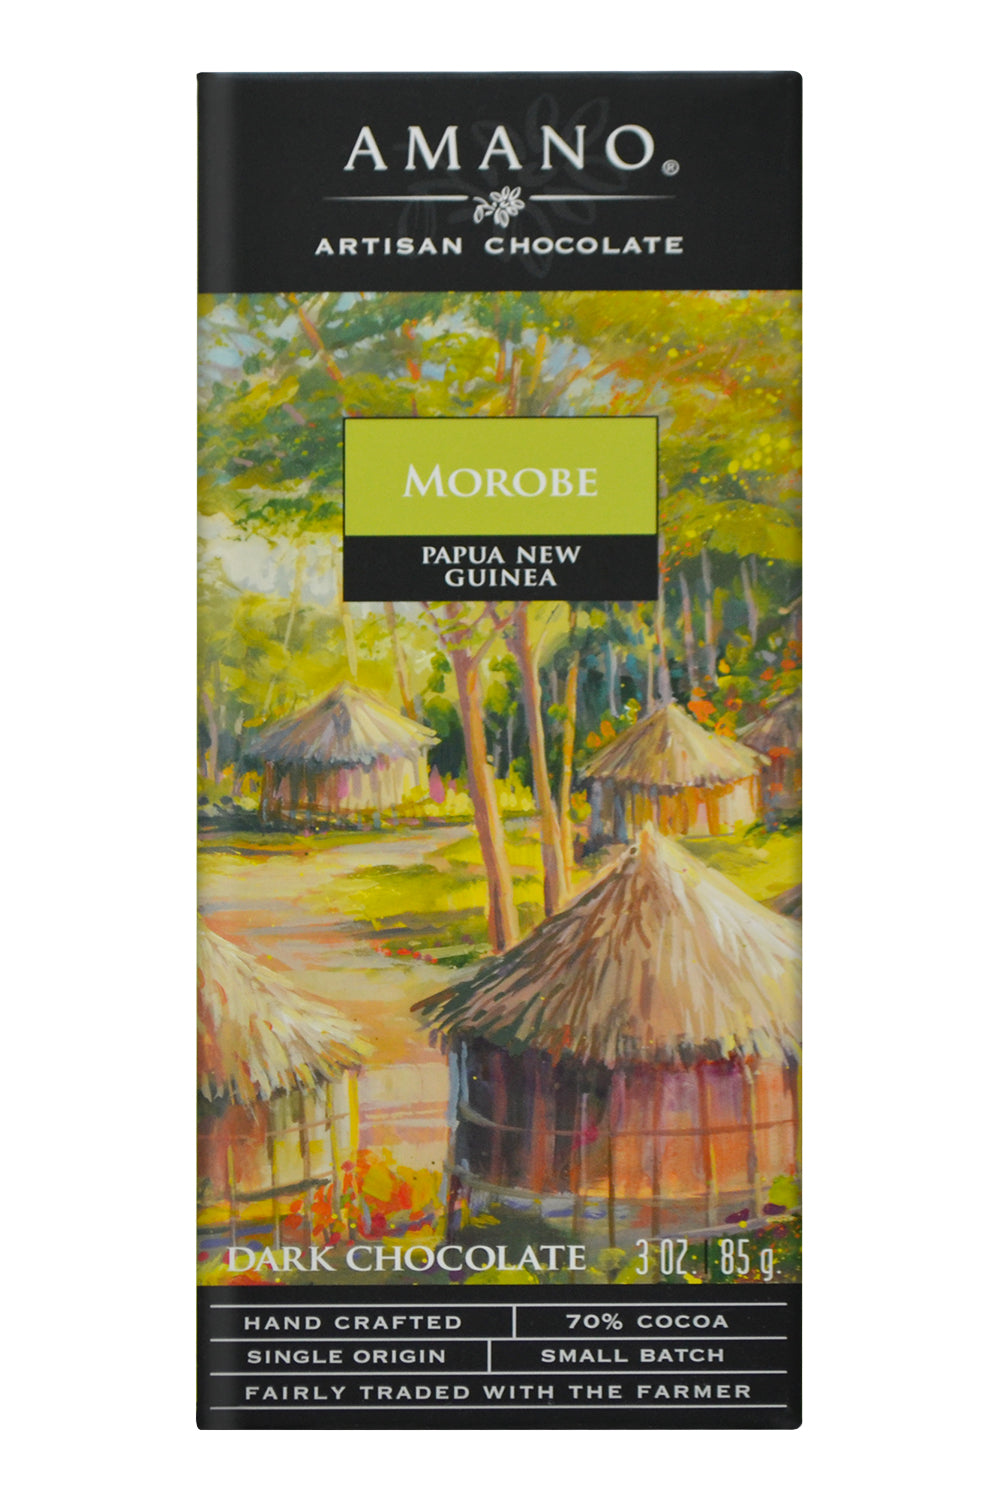 Amano Dark Chocolate - Morobe